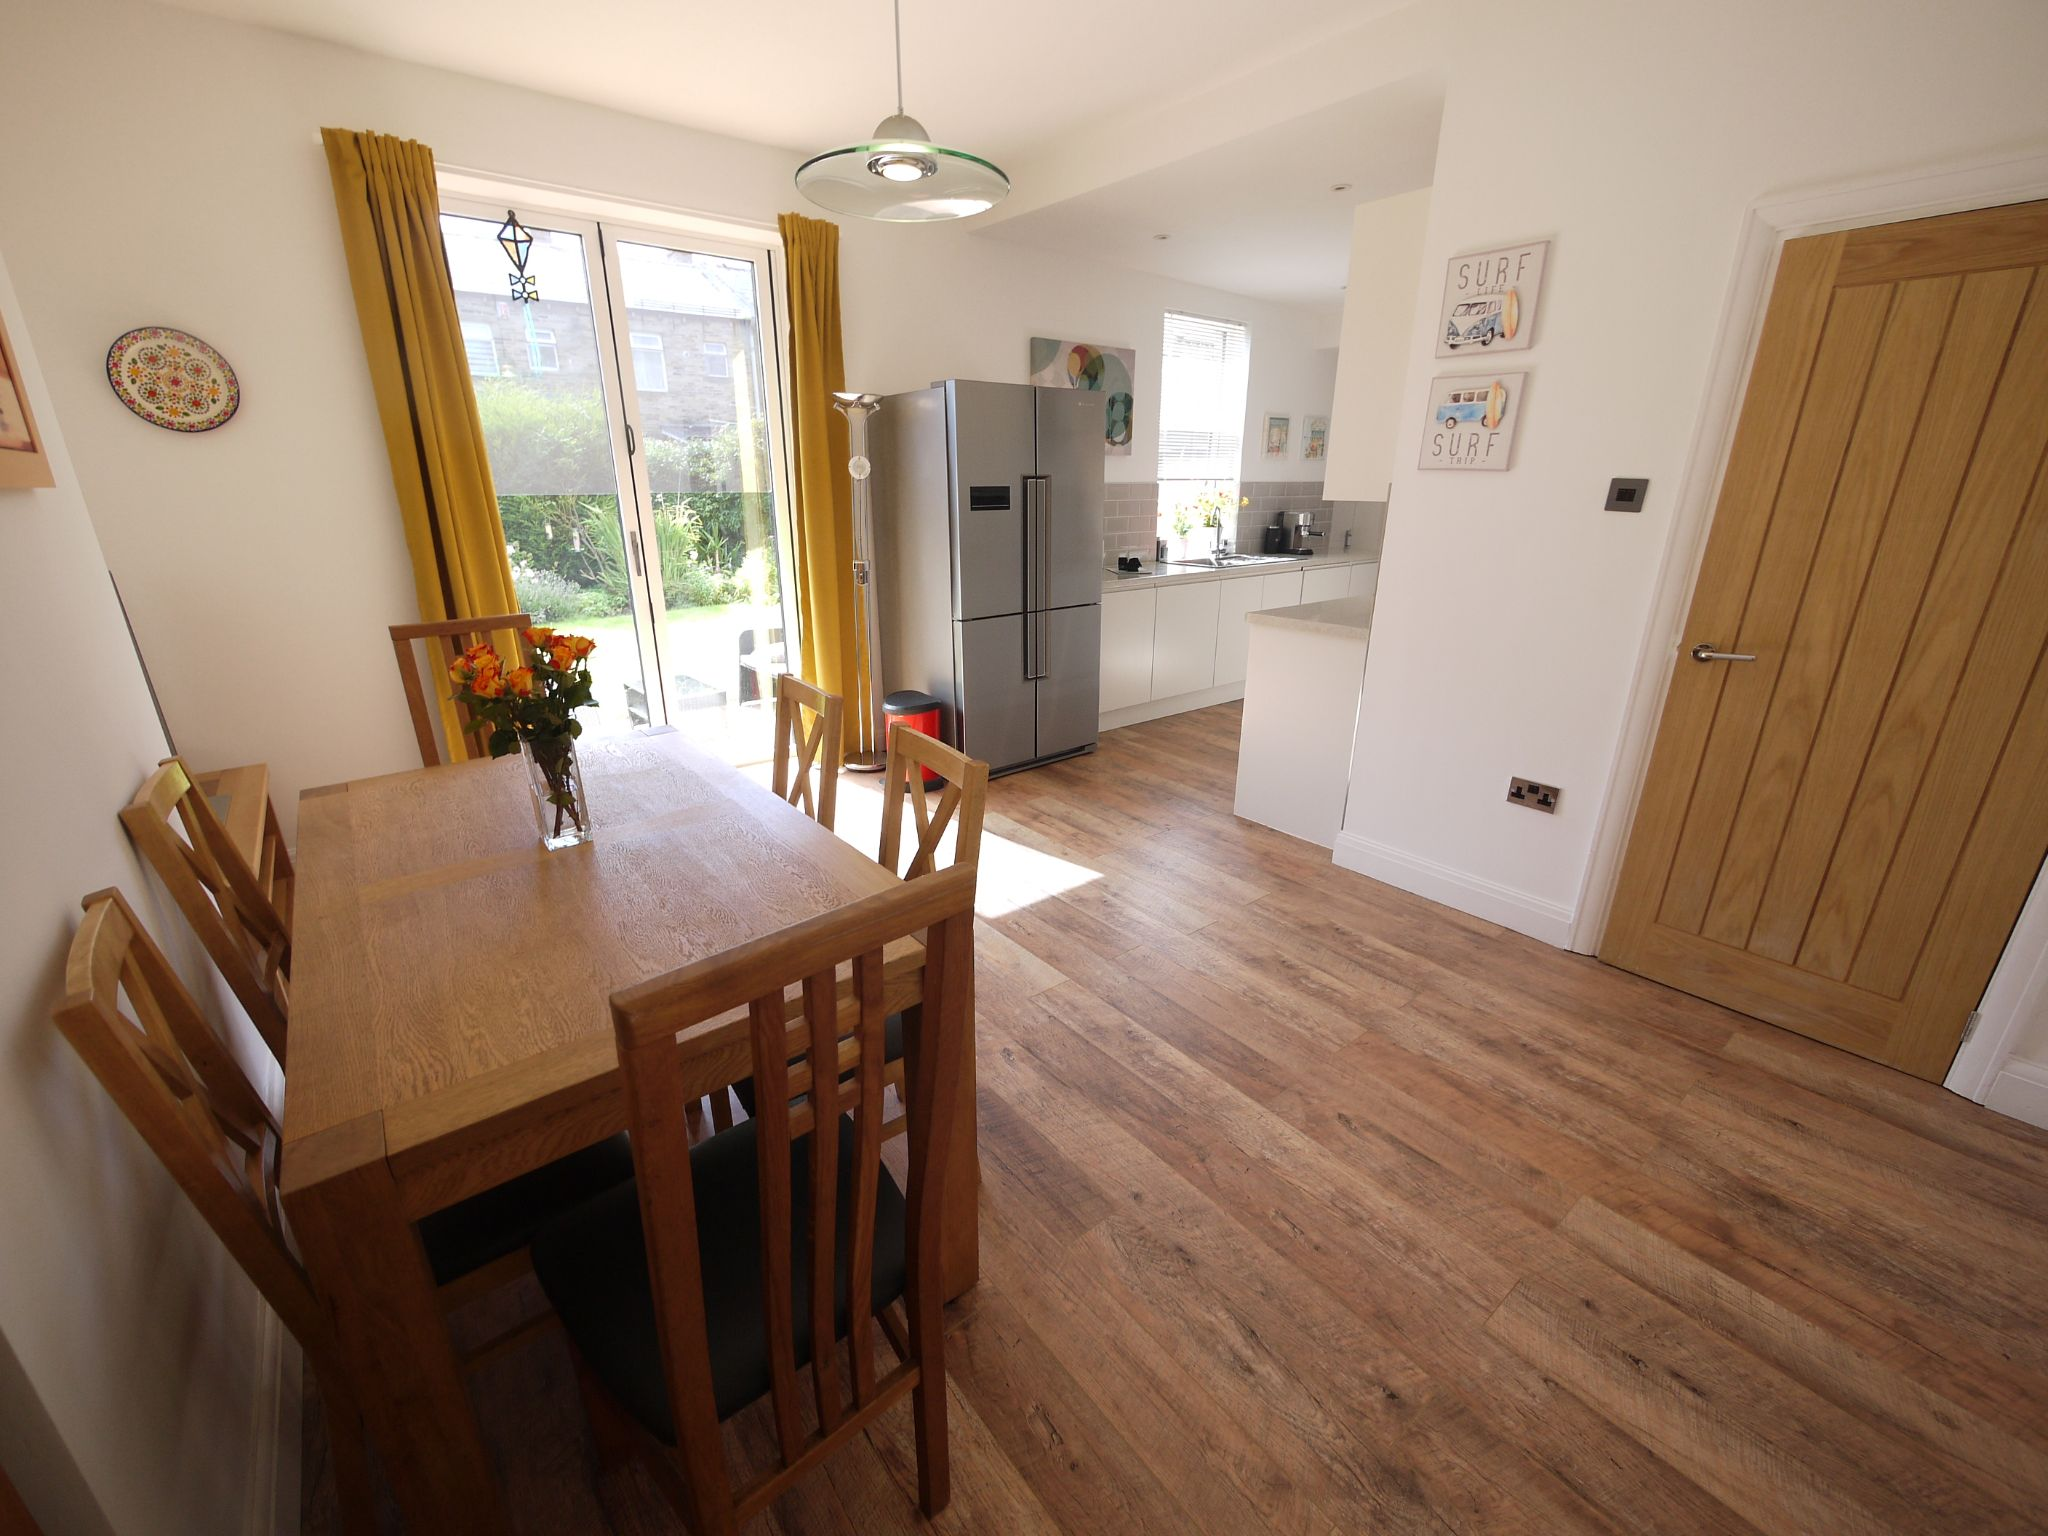 4 bedroom detached house For Sale in Halifax - Dining Room.